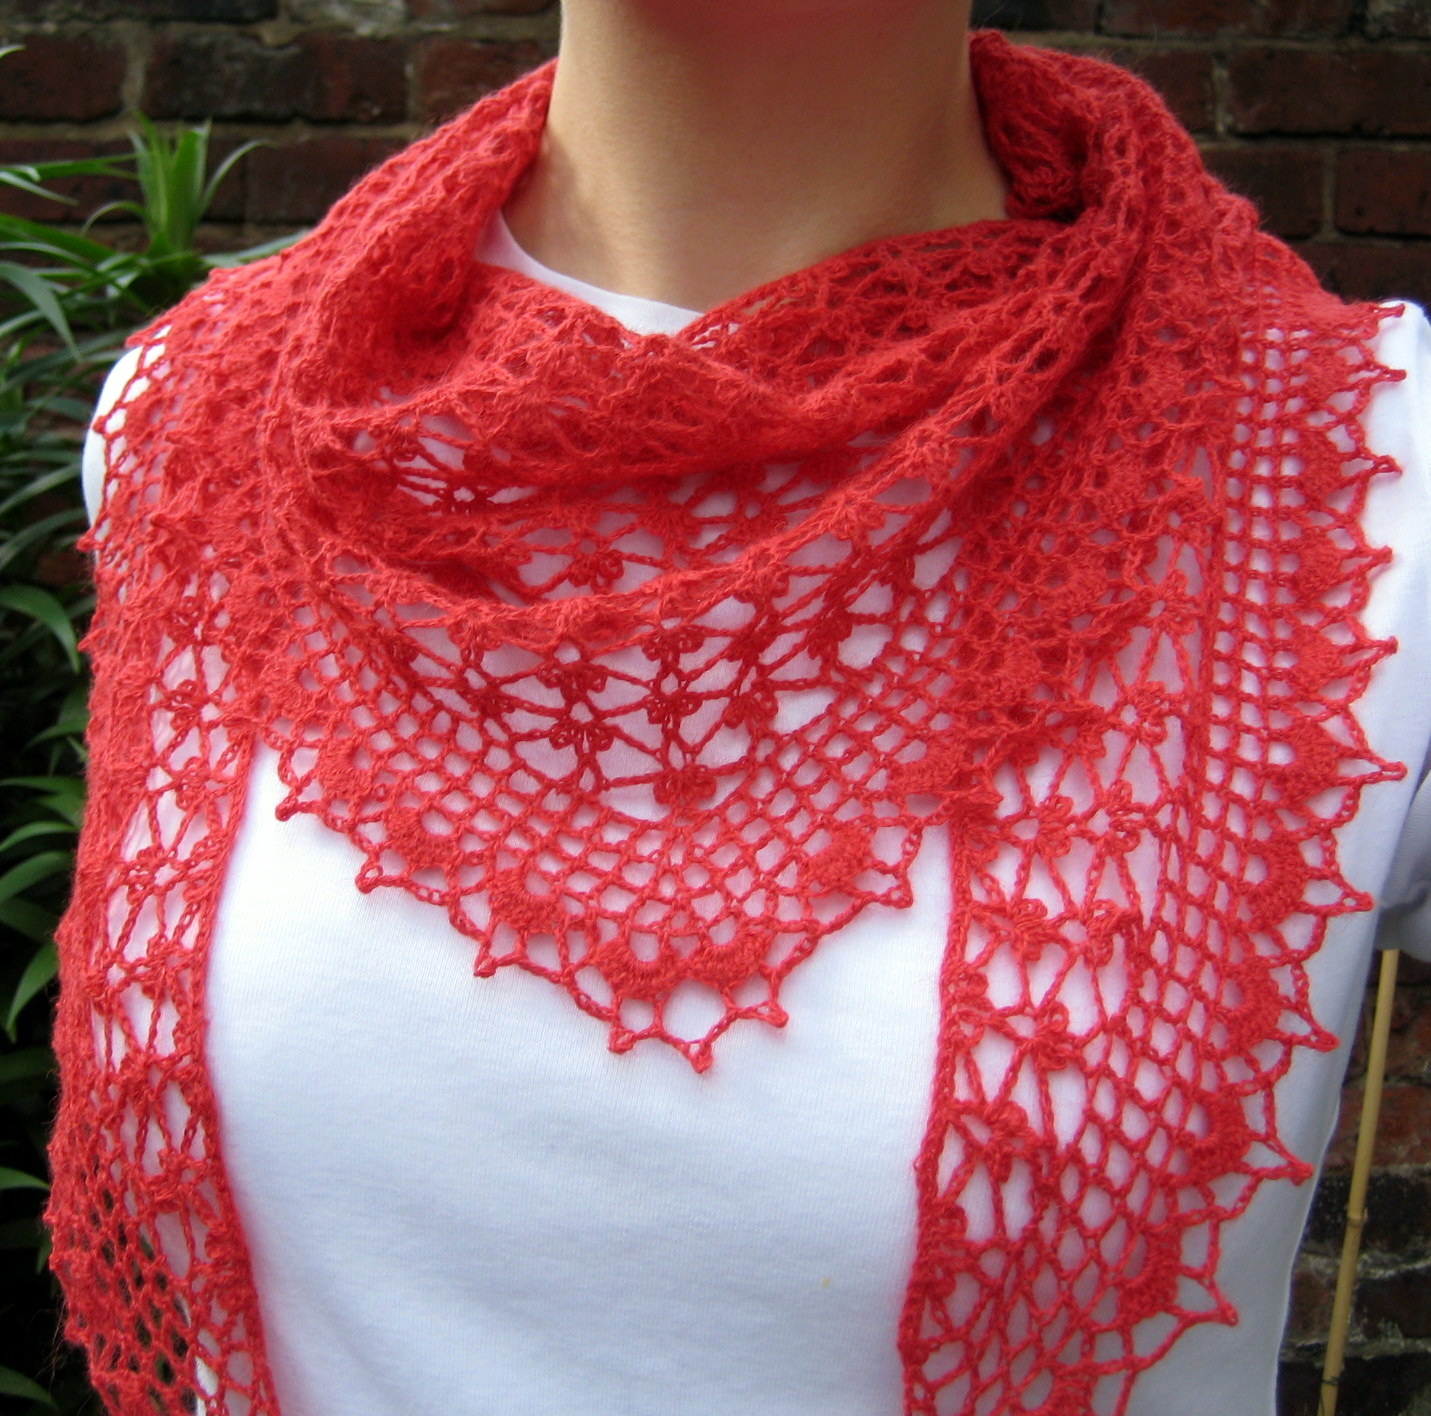 Scarf Crochet Pattern Free to Upgrade Your Winter Style Summer Sprigs Lace Scarf Make My Day Creative